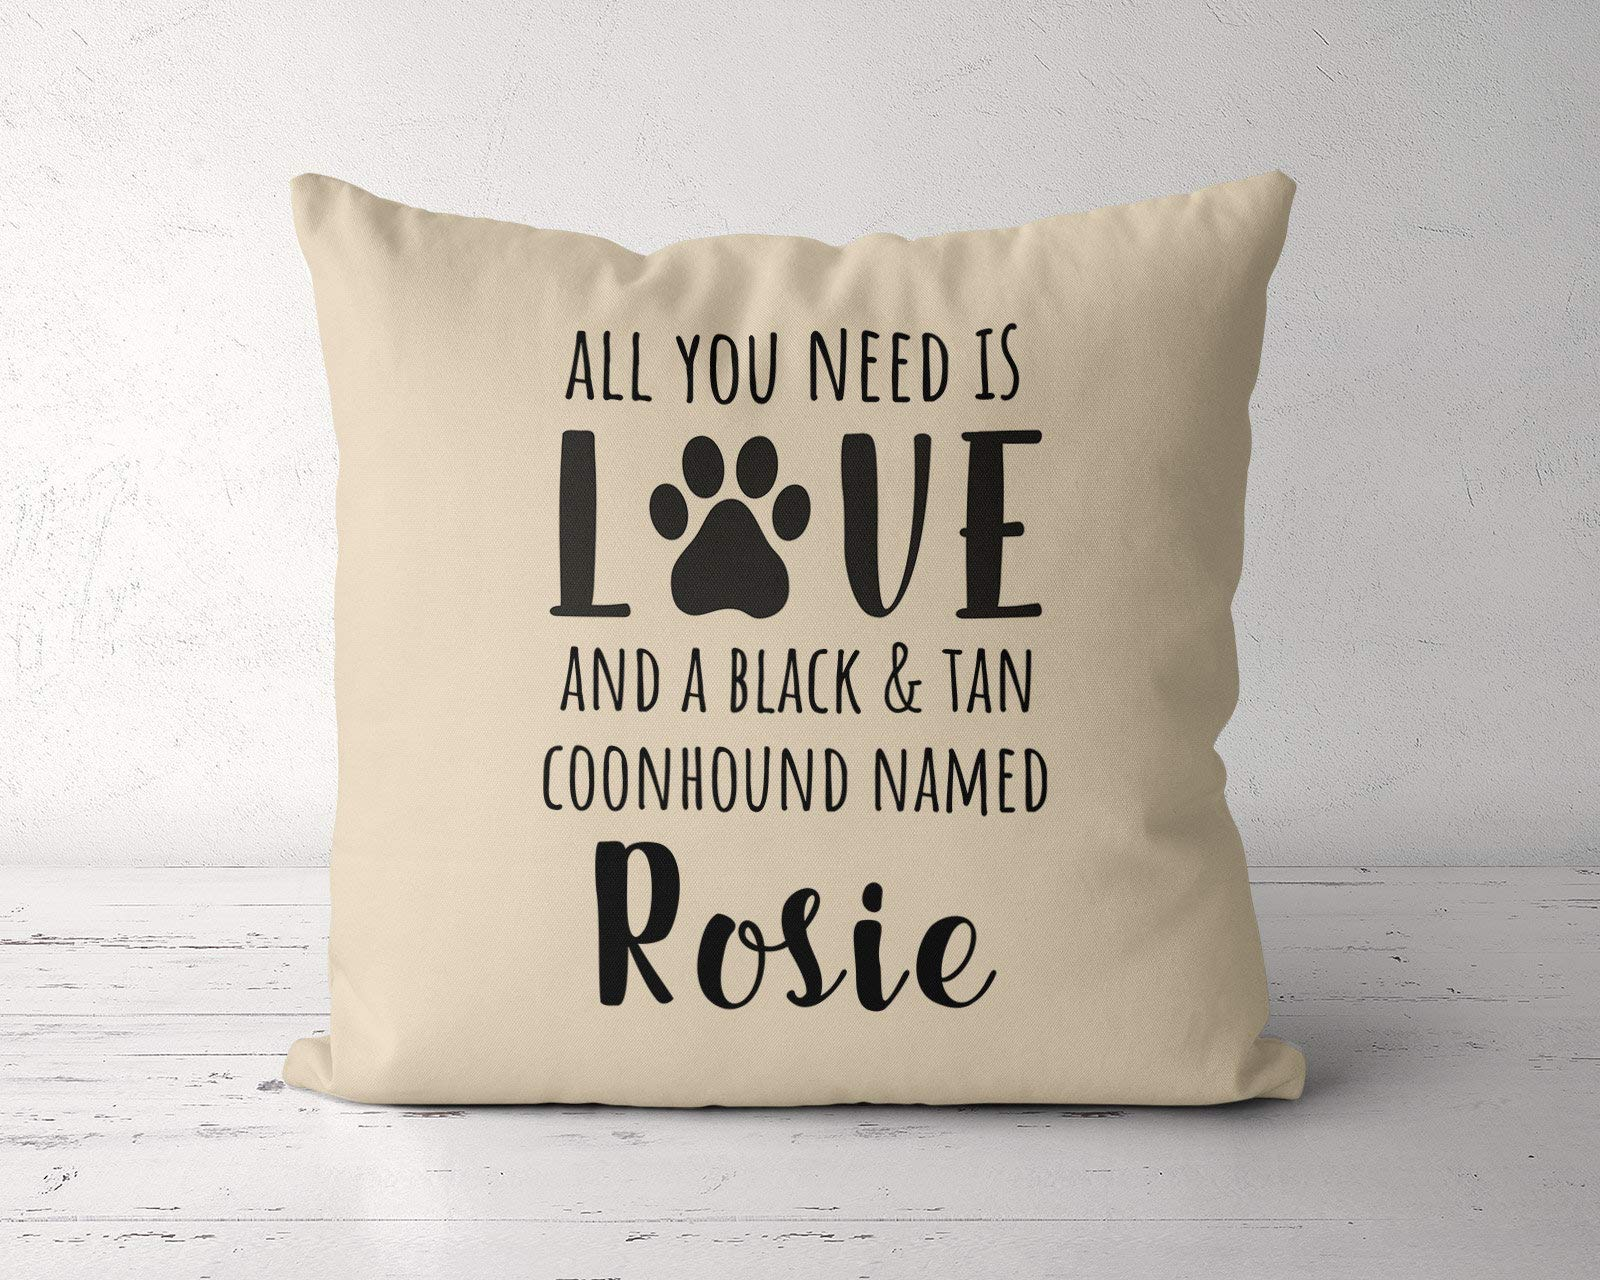 unknow All you need is love and a Black and Tan Coonhound named, custom Coonhound pillow, Coonhound owner lover, Black and Tan Coonhound without Insert,Housewarming Gift to Lover Family Friend